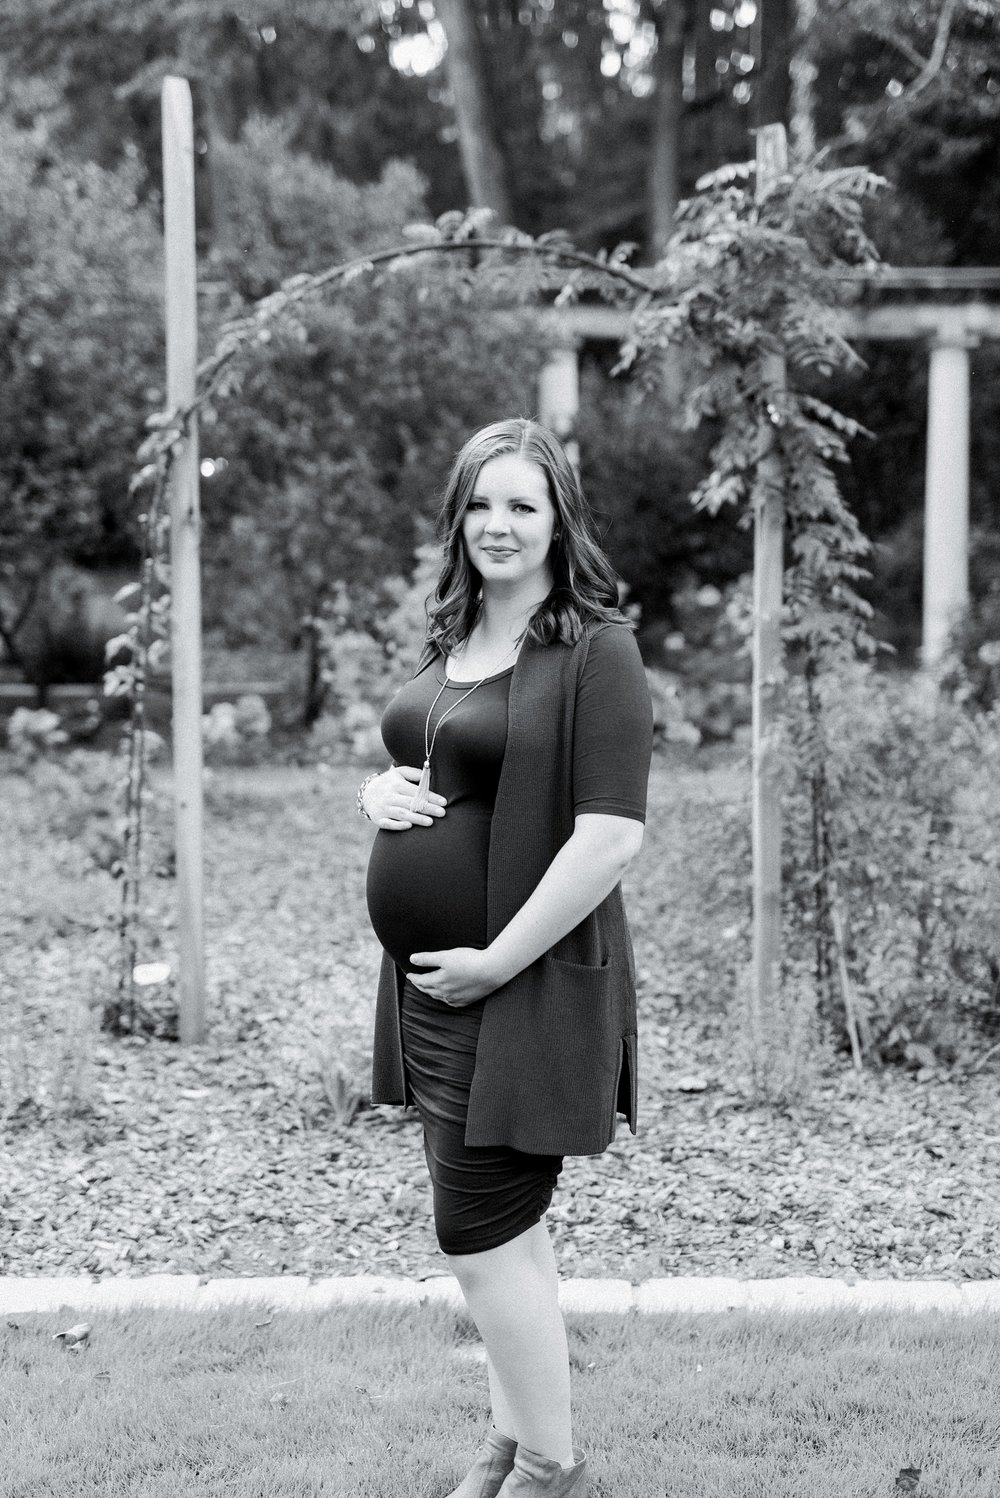 cator-woolforld-gardens-atlanta-fine-art-maternity-photographer-boltfamily-52.jpg